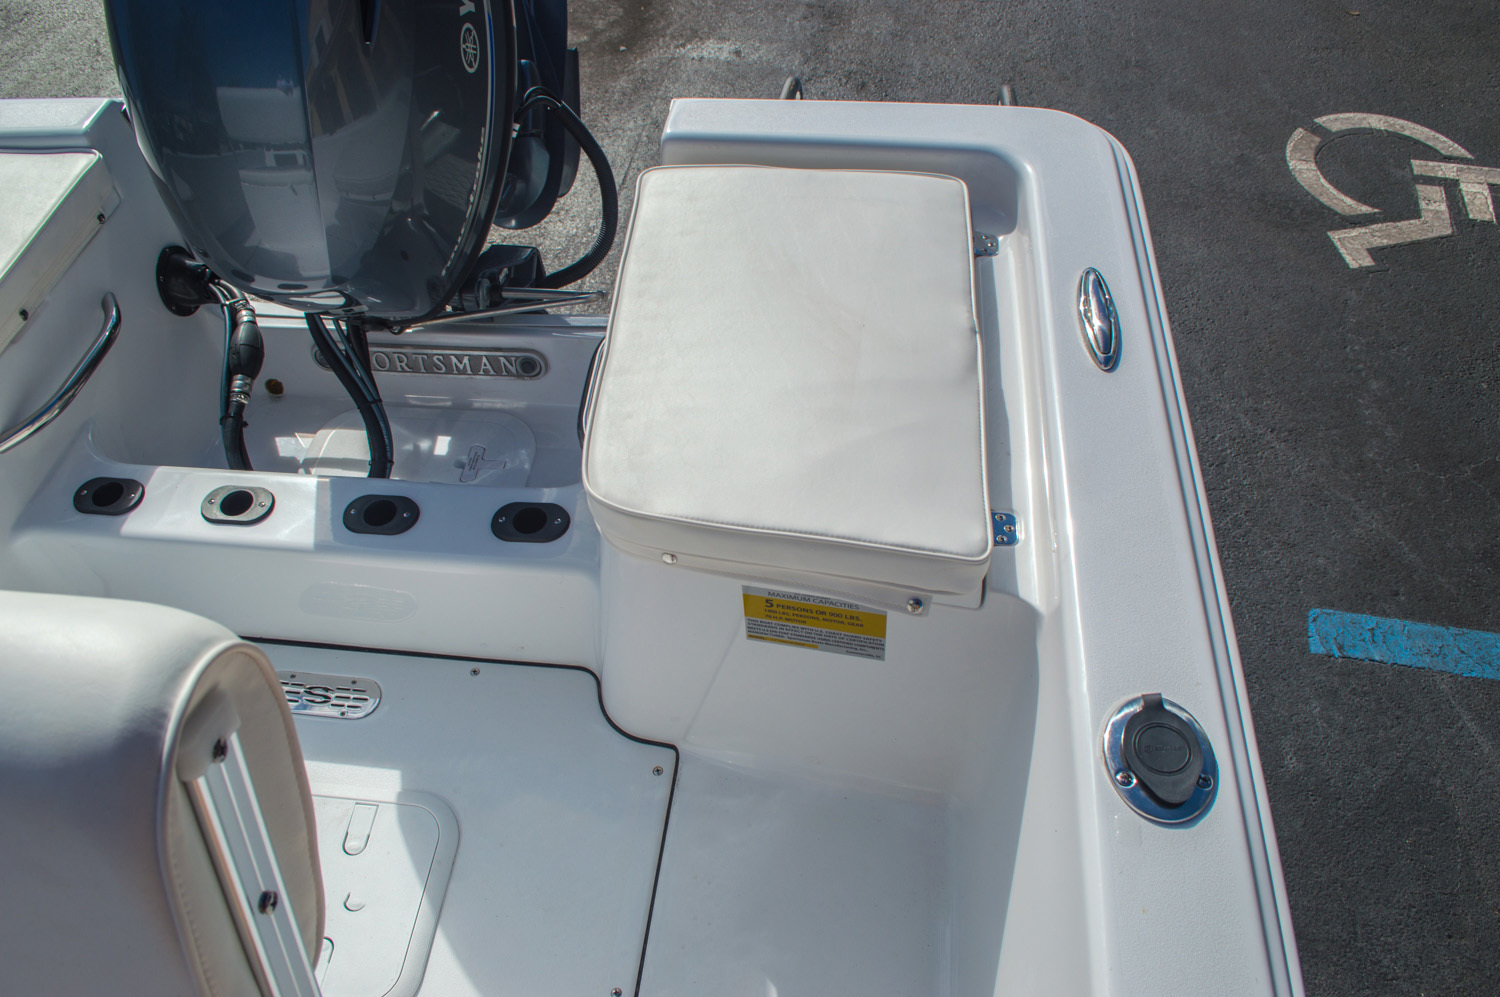 Thumbnail 15 for New 2016 Sportsman 17 Island Reef boat for sale in Vero Beach, FL